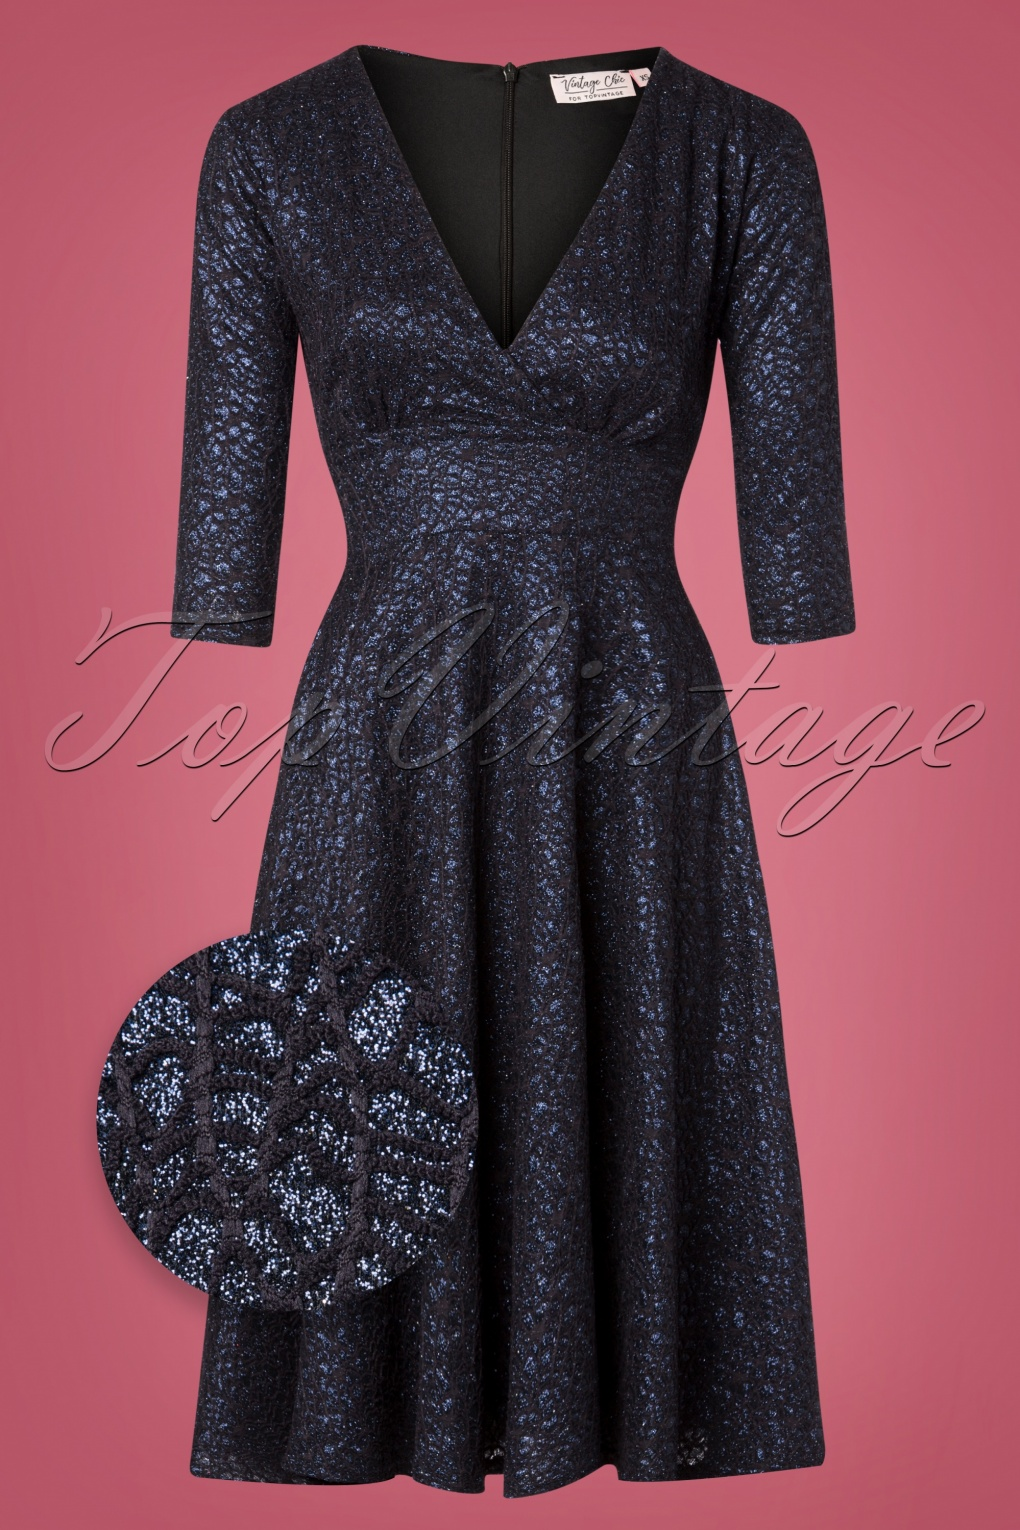 1950s Dresses, 50s Dresses | 1950s Style Dresses 50s Rosie Glitter Swing Dress in Navy £62.31 AT vintagedancer.com